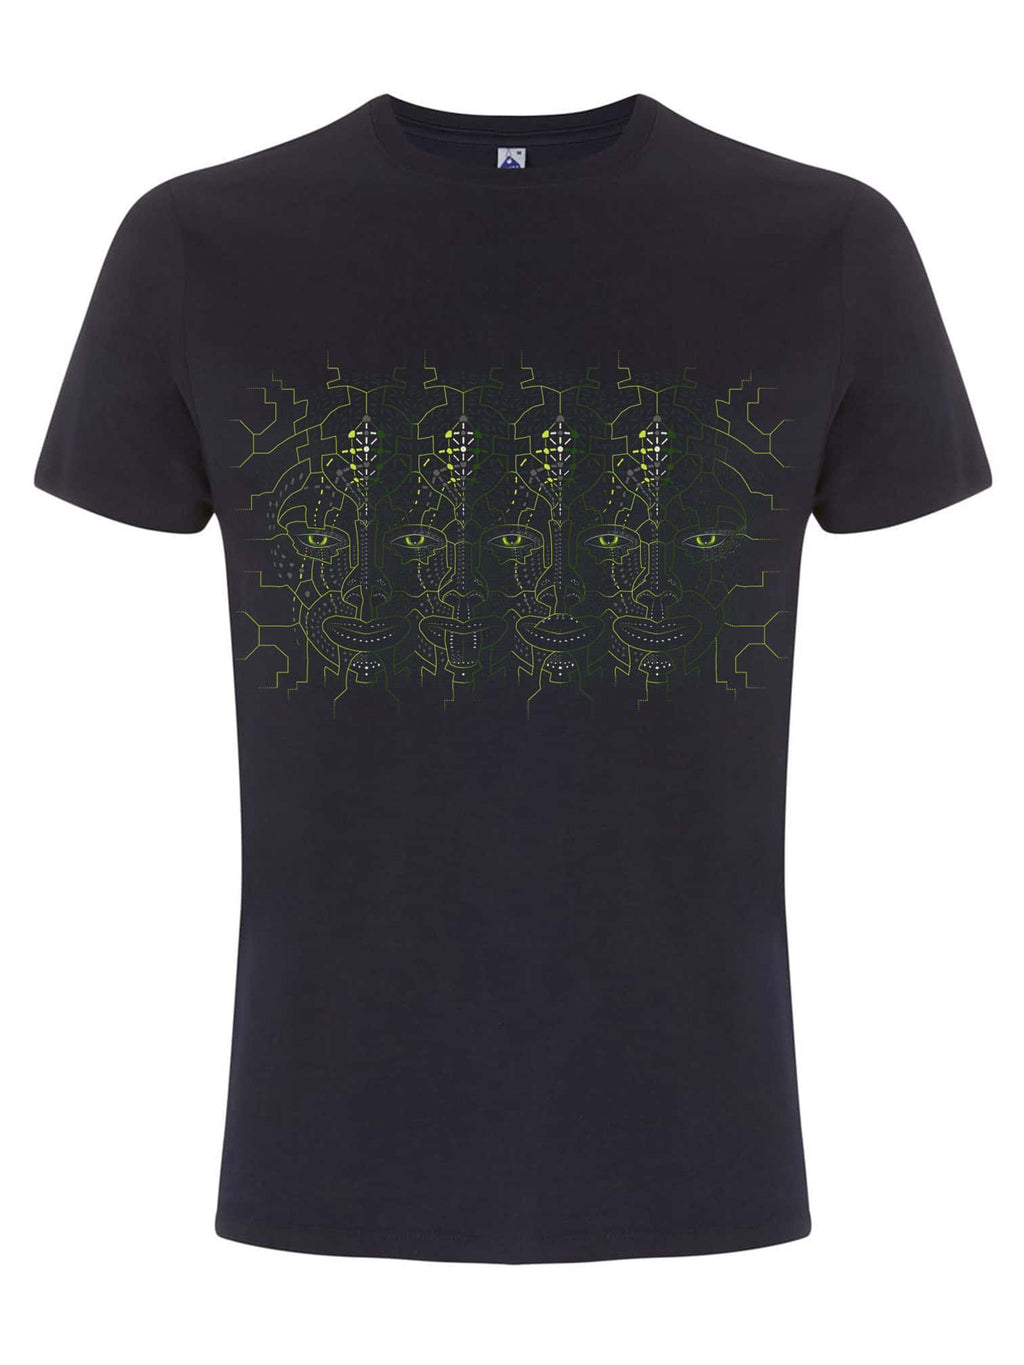 4th Dimension Made To Order Men T-Shirt - Navy